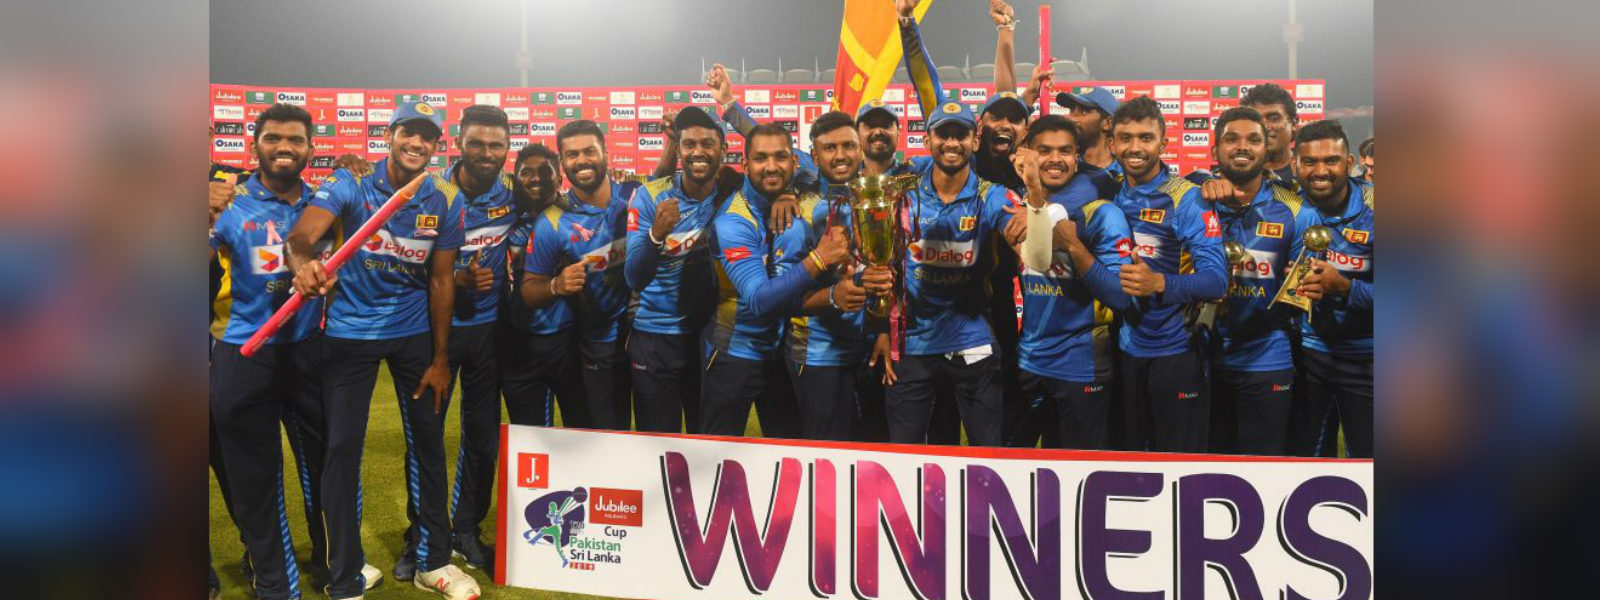 Sri Lanka Cricket team arrives in the country following successful tour of Pakistan